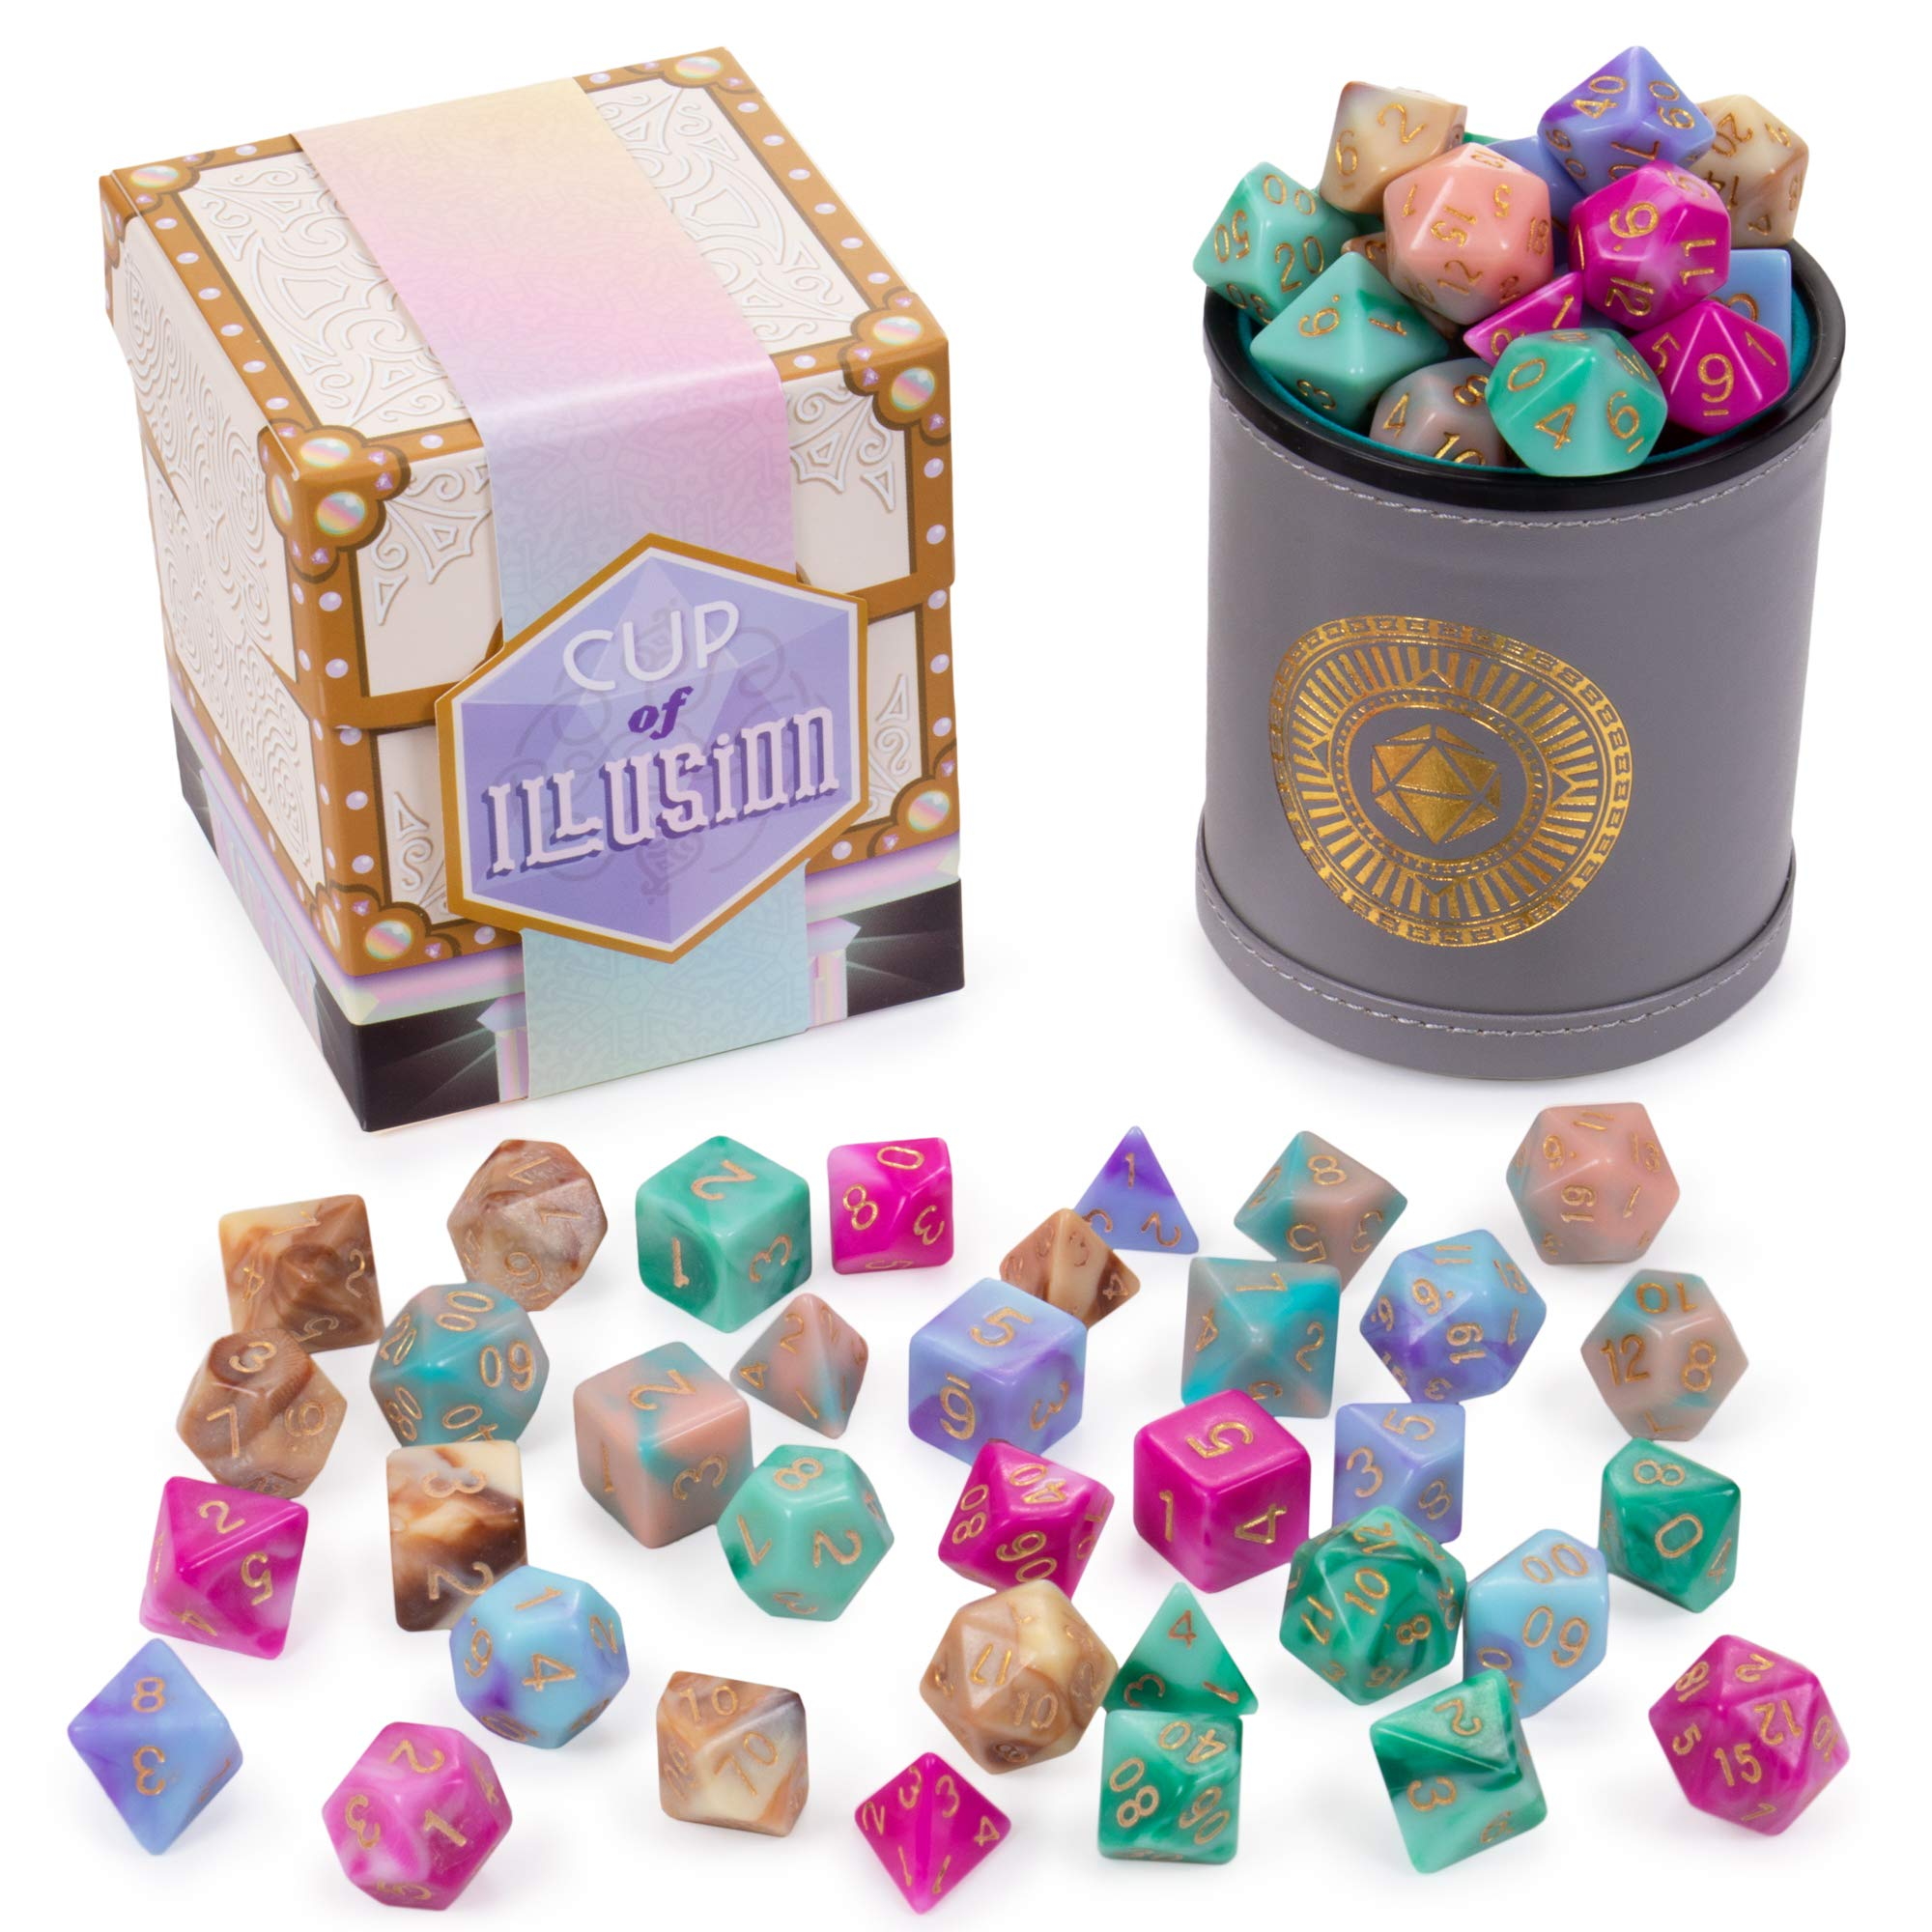 Cup of Illusion: 5 Complete Sets of 7 Premium Two-Color Swirl Polyhedral Role Playing Gaming Dice for Tabletop RPGs | Includes Grey Leather Dice Cup Accessory by Wiz Dice